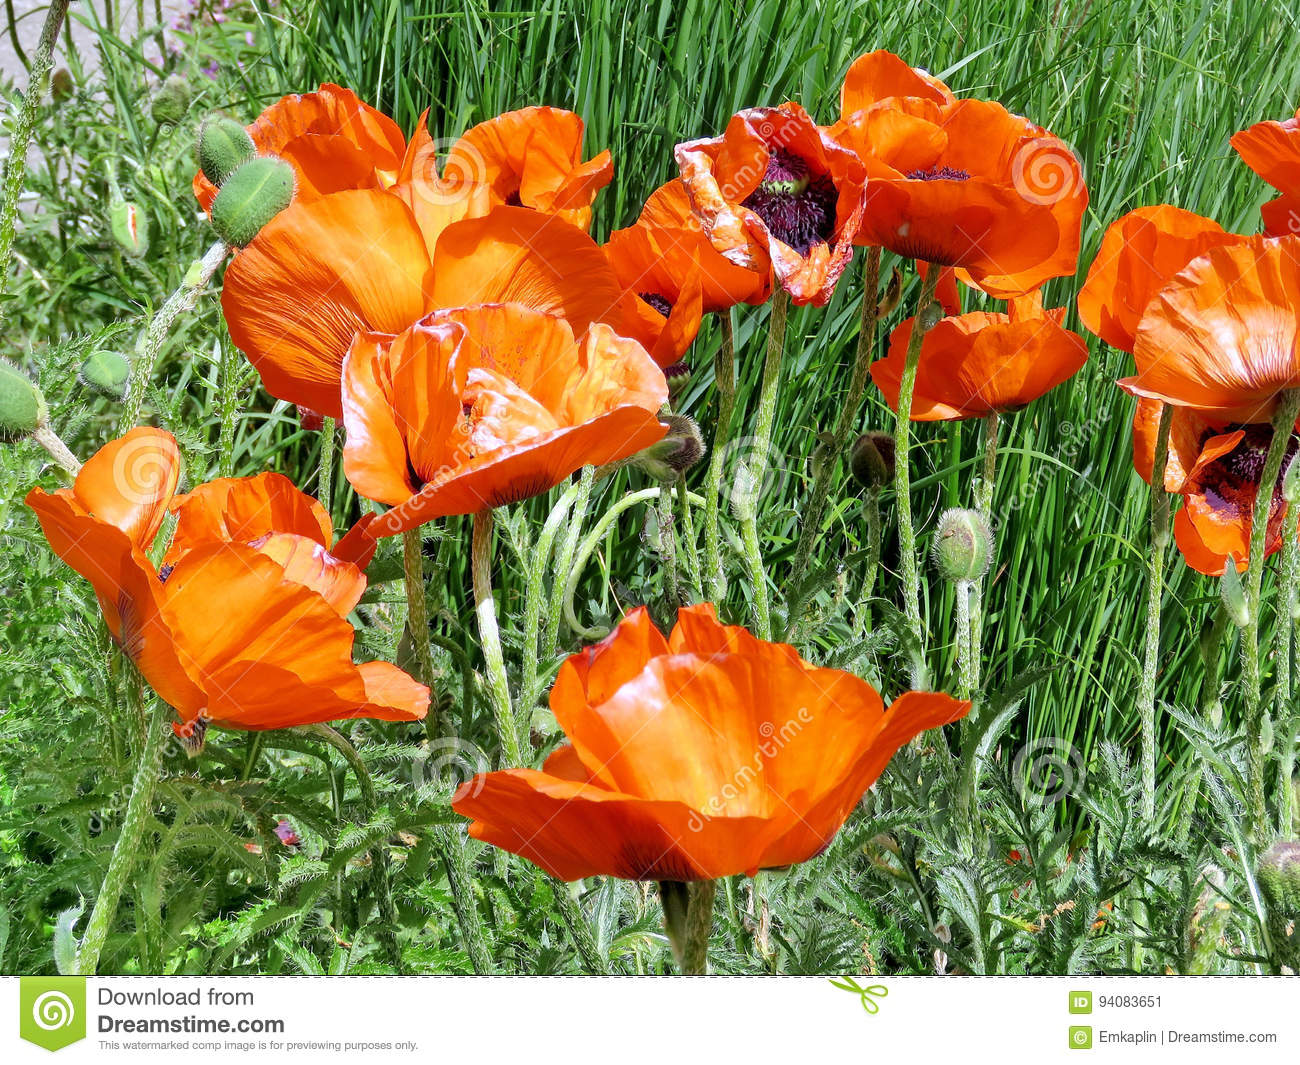 Poppy flowers stock image image of flower green agriculture poppy flowers mightylinksfo